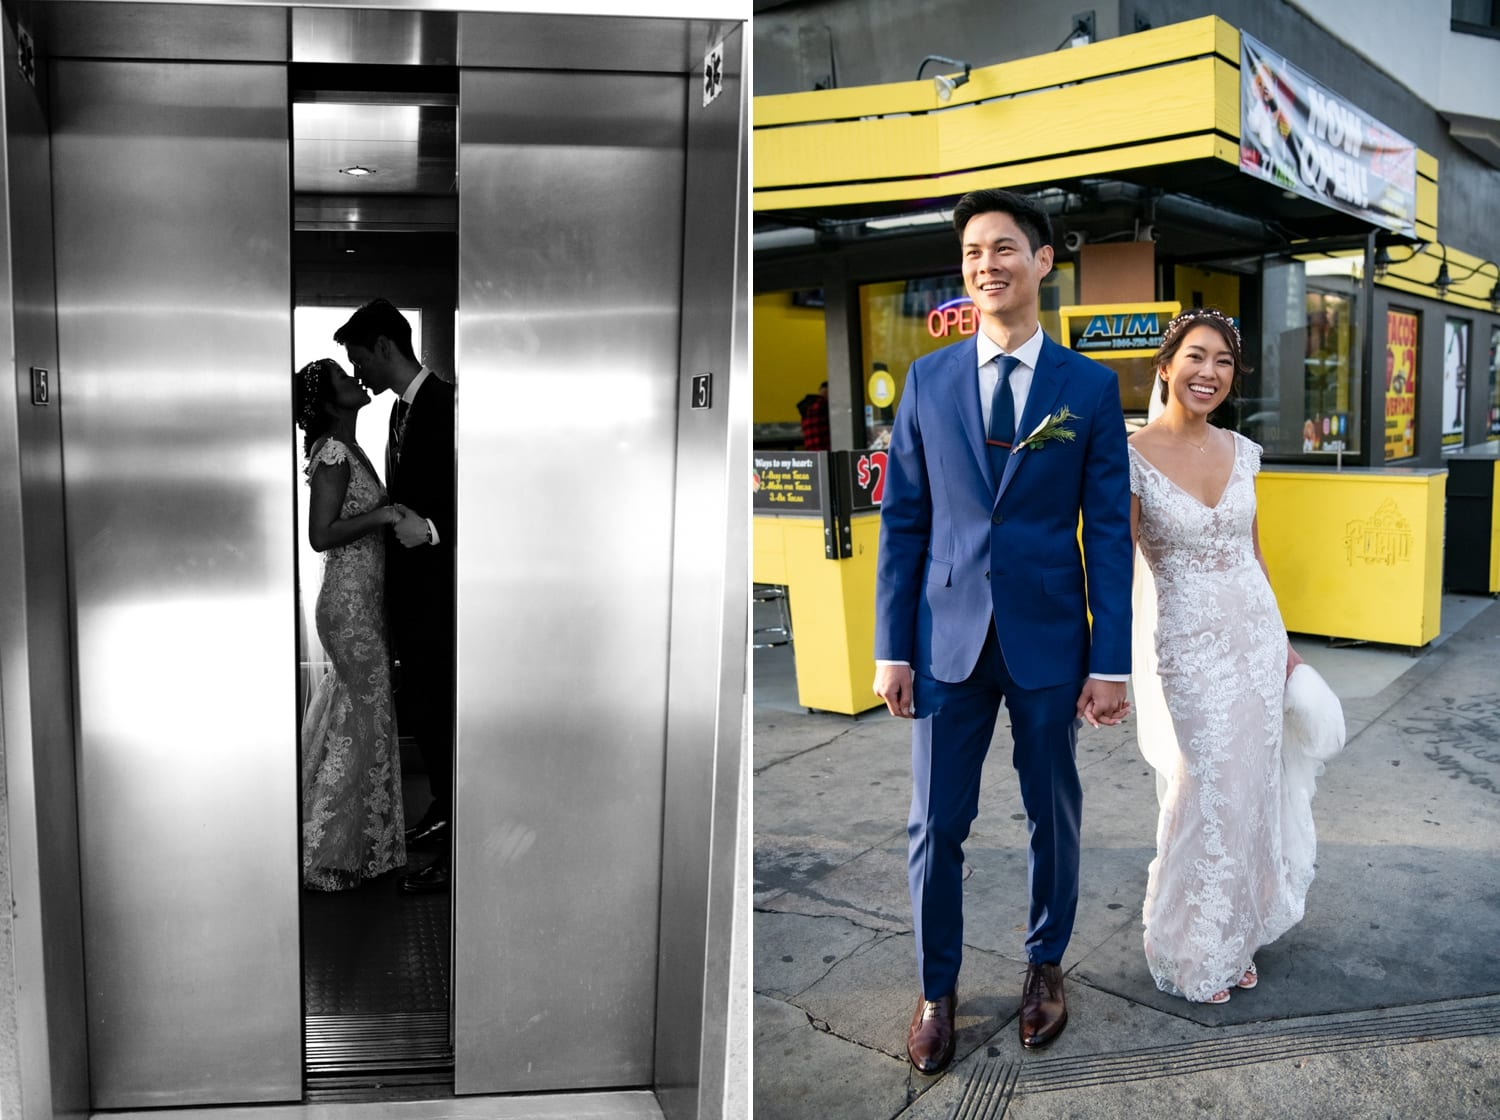 Bride and groom in an elevator in San Diego.